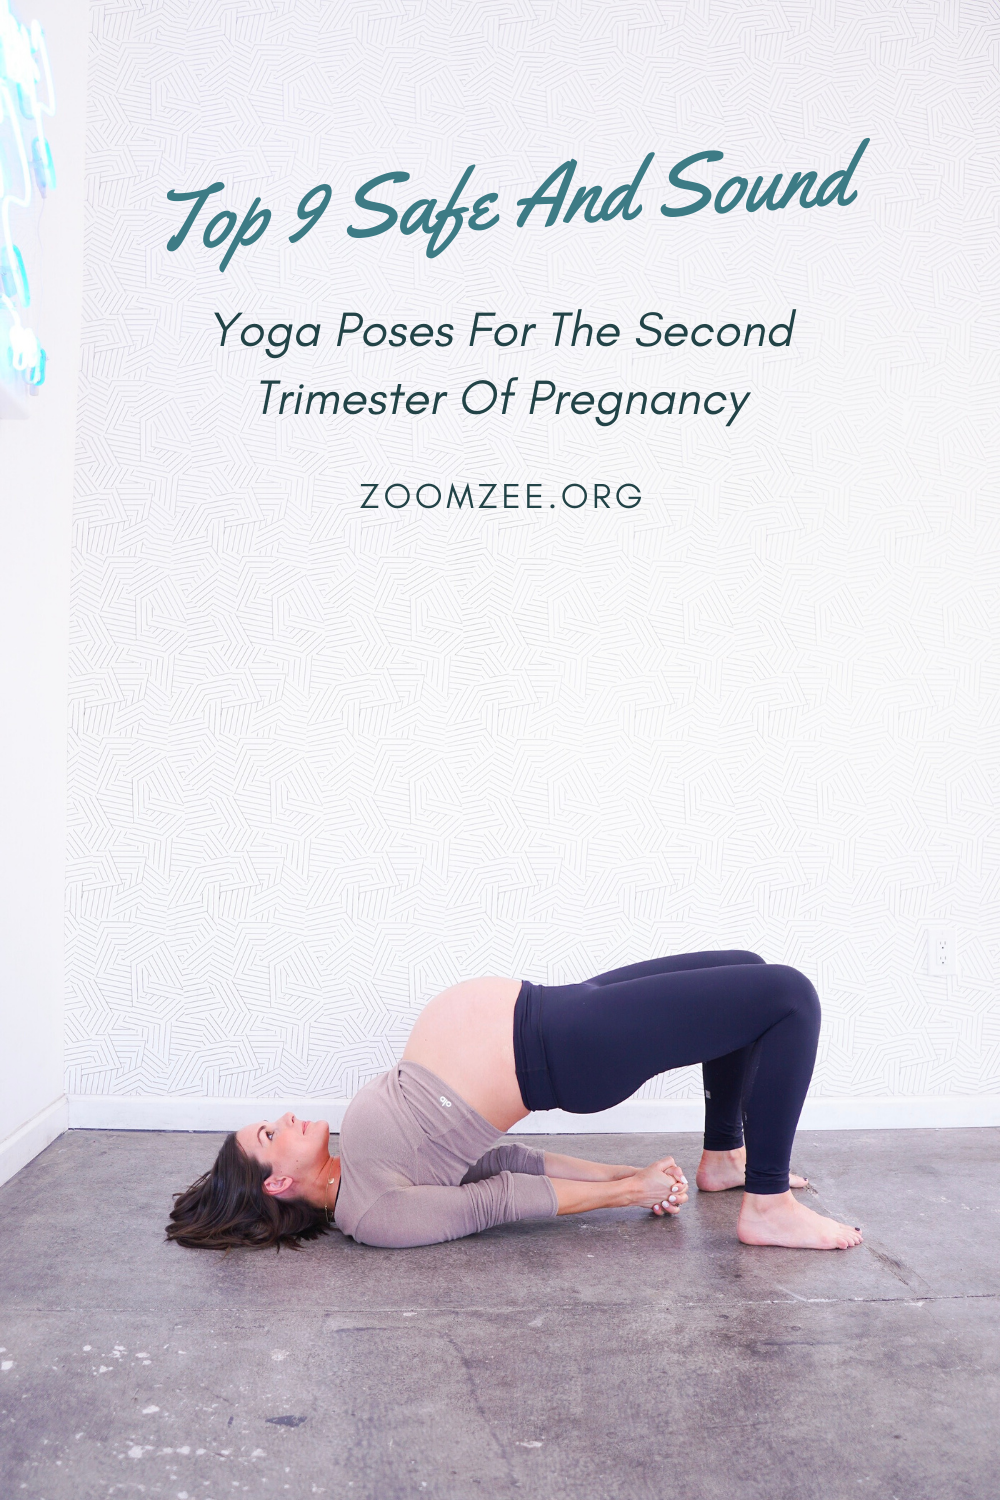 Top 43 Safe And Sound Yoga Poses For The Second Trimester Of